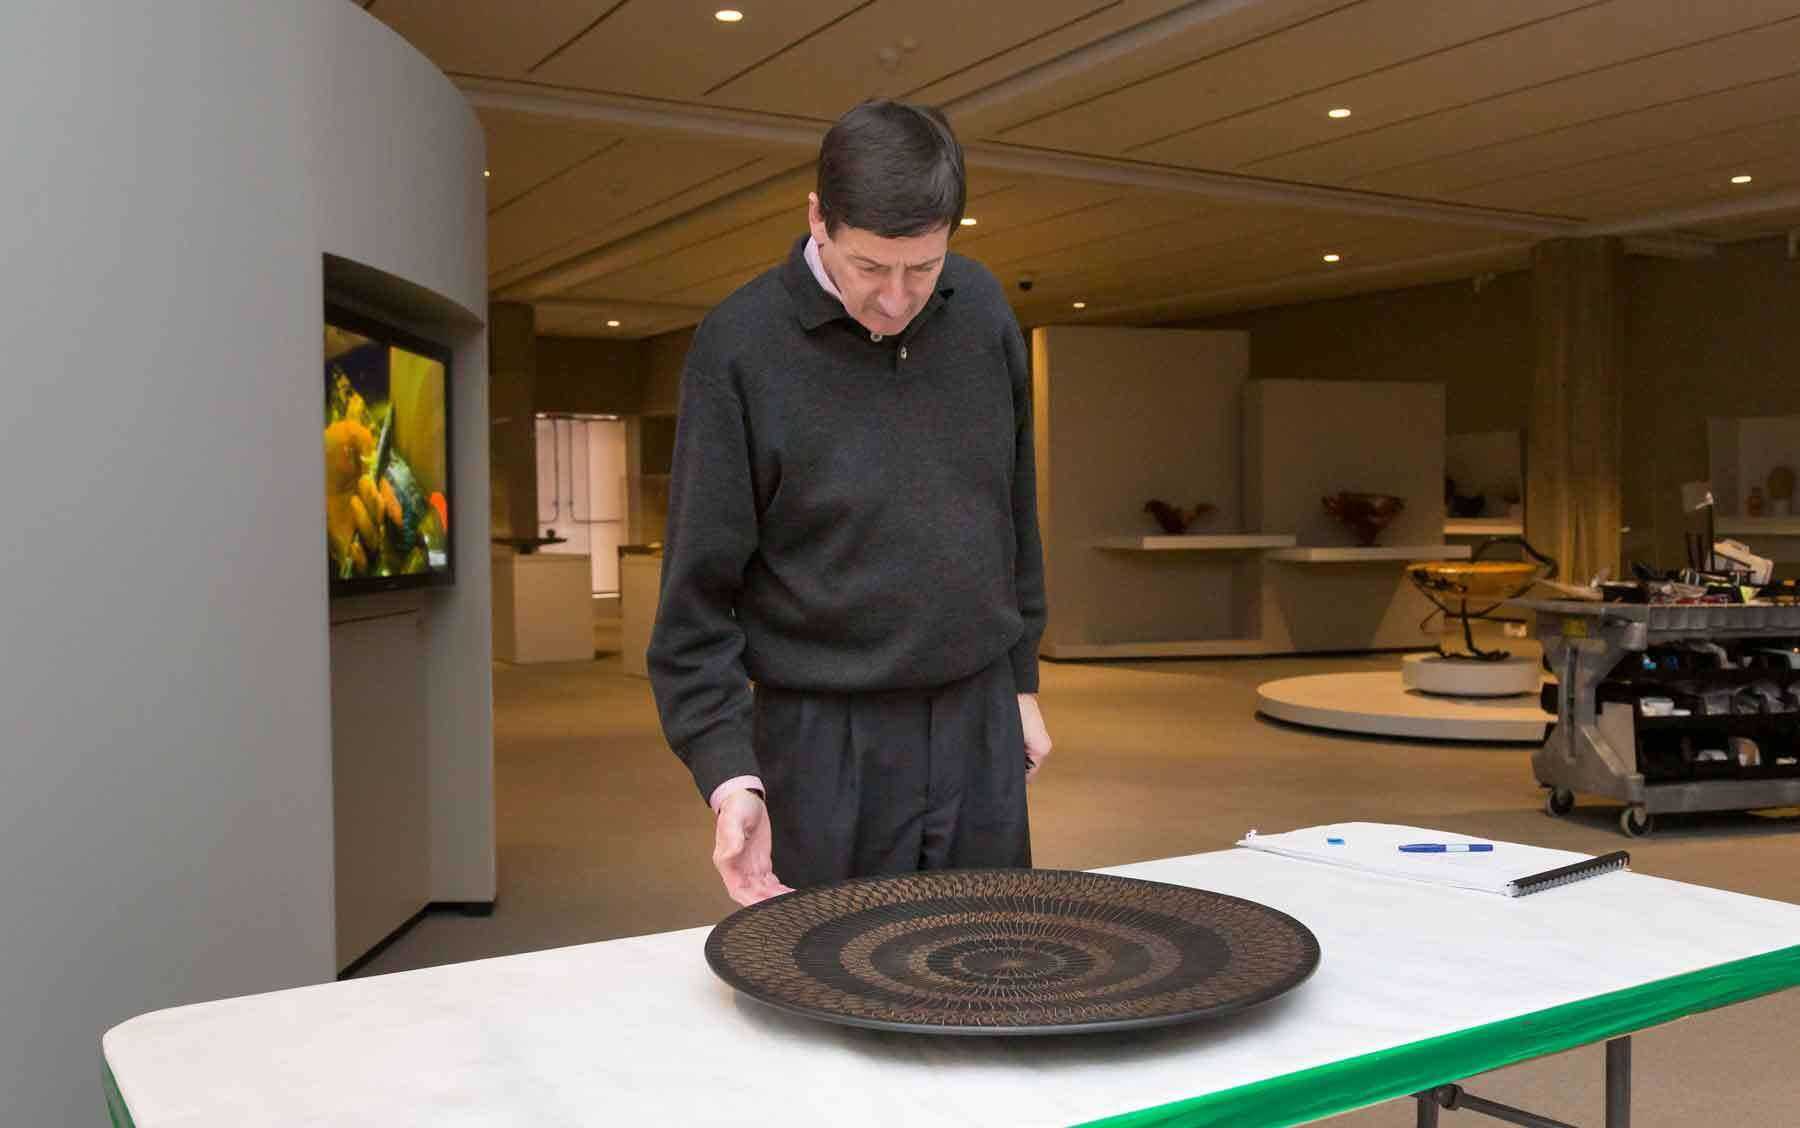 Dean during installation of Audacious: The Fine Art of Wood from the Montalto Bohlen Collection.